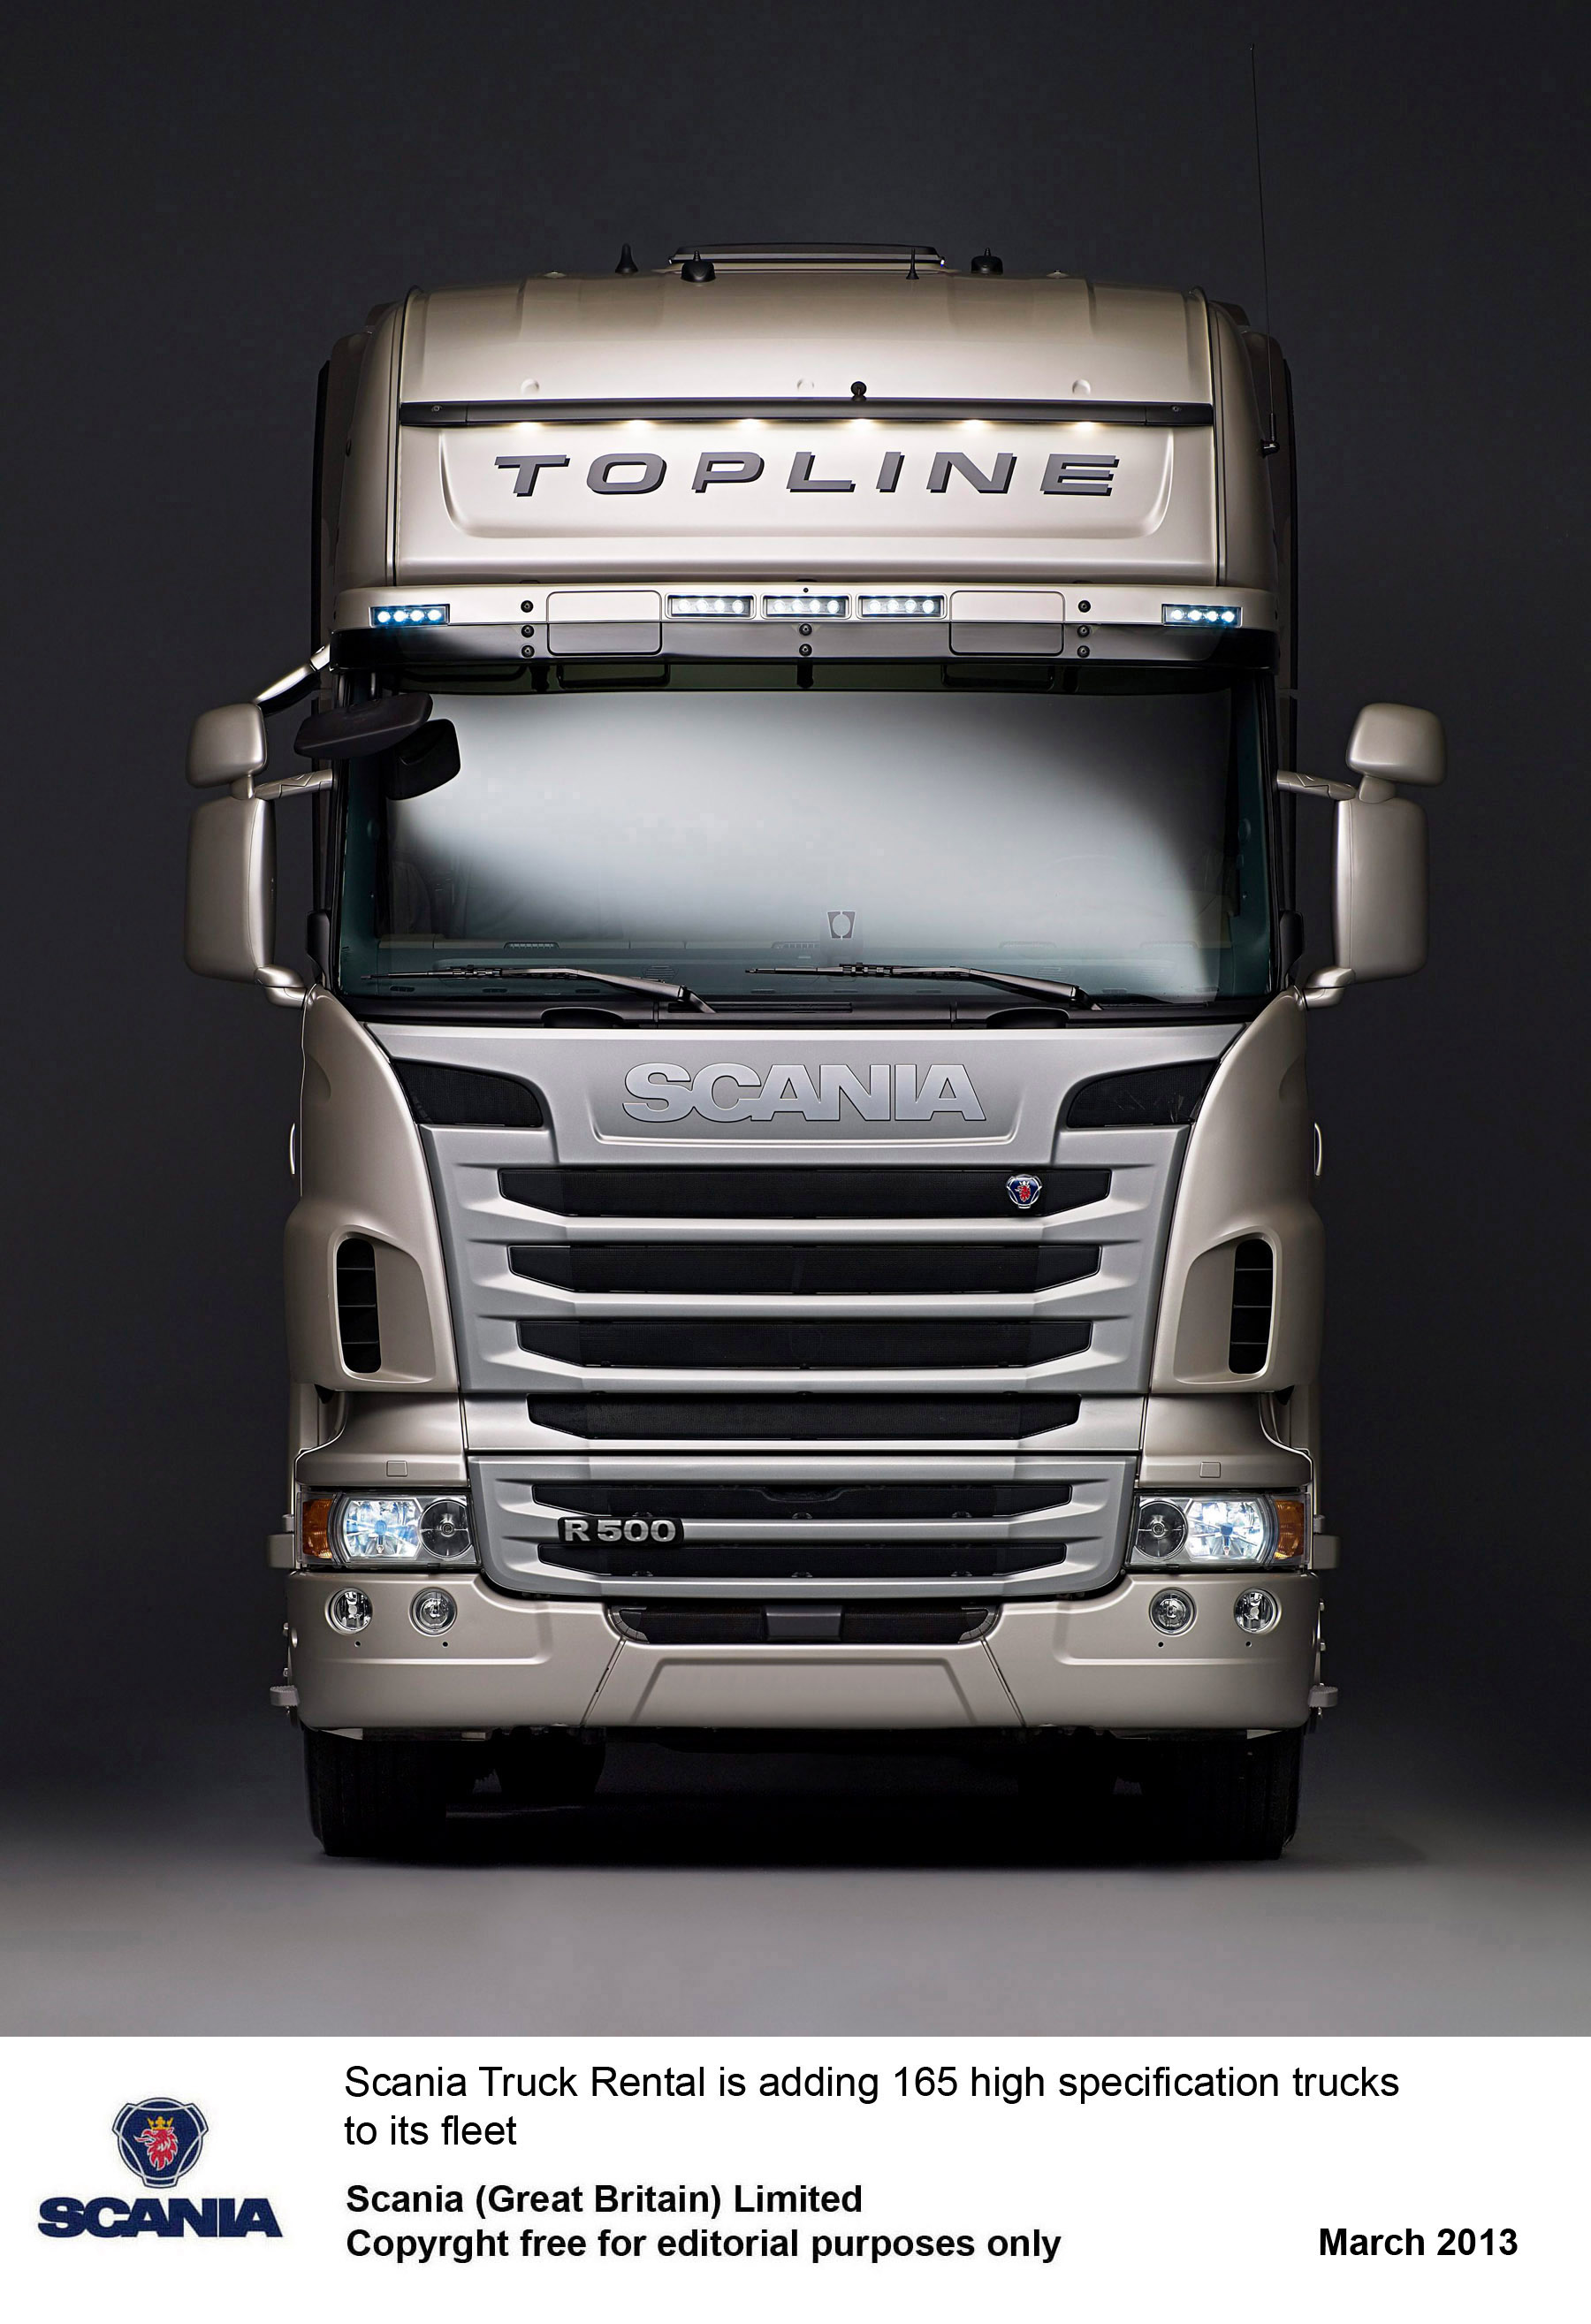 Image Of Scania Rental Truck Truck rental Scania Great BritainScania